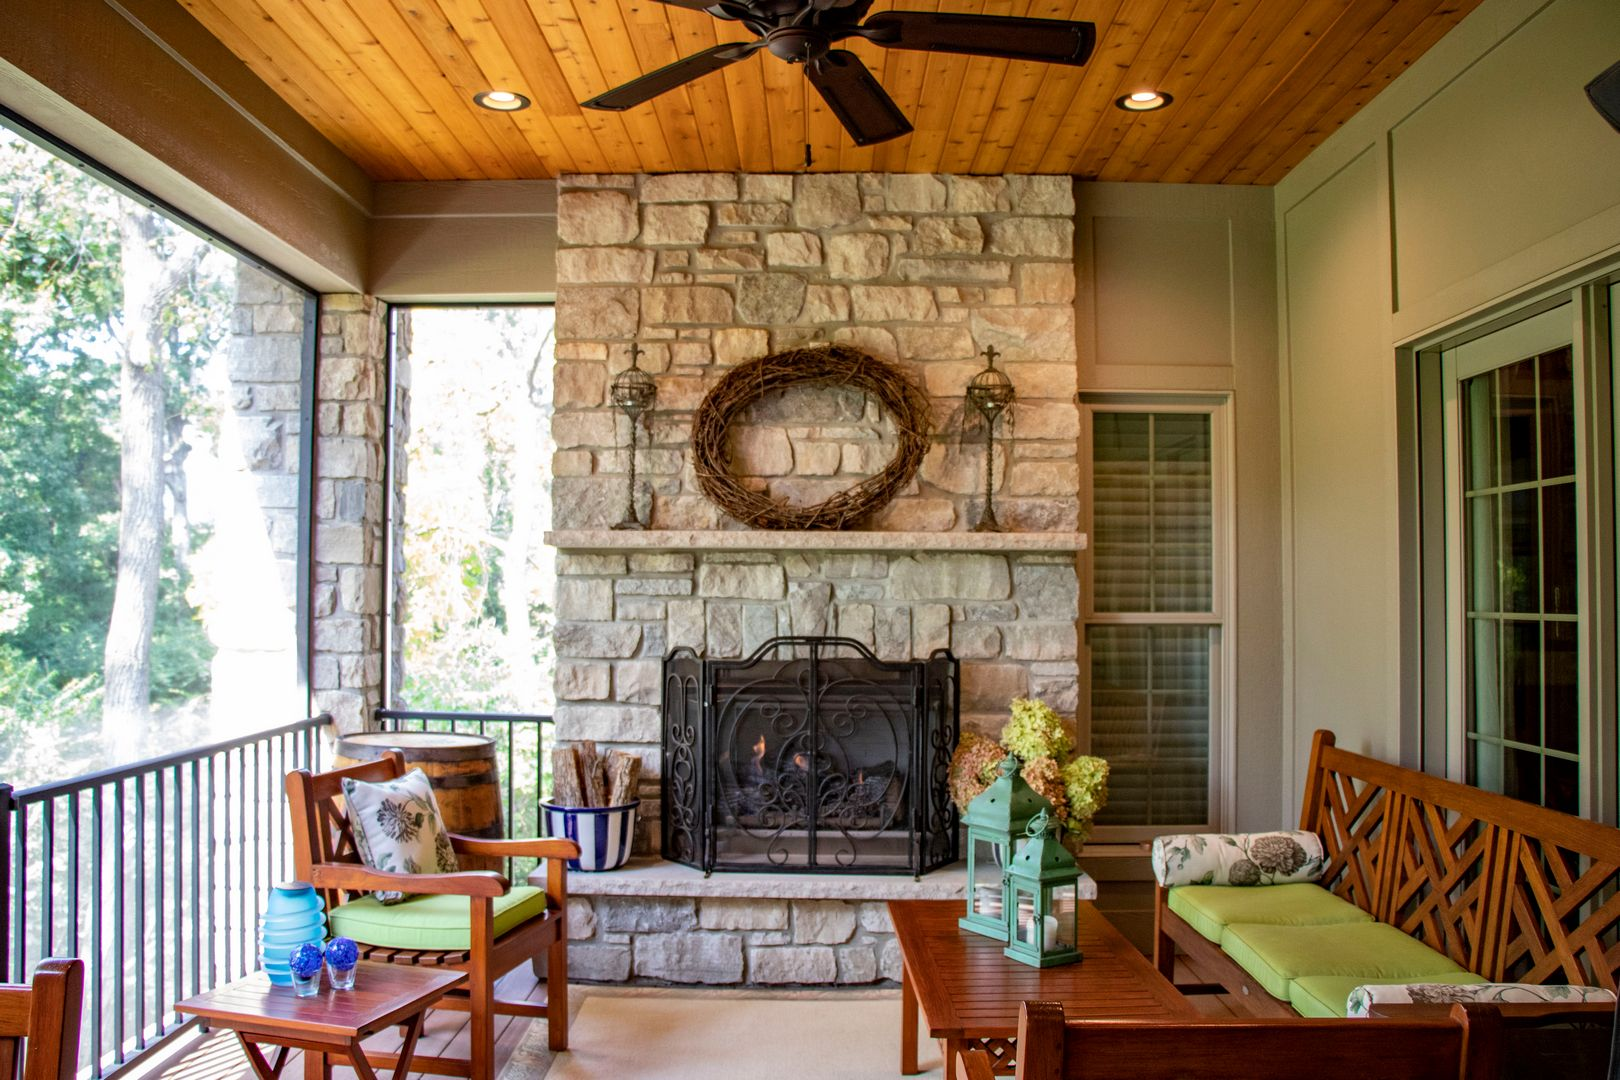 Outdoor screen room with a fireplace